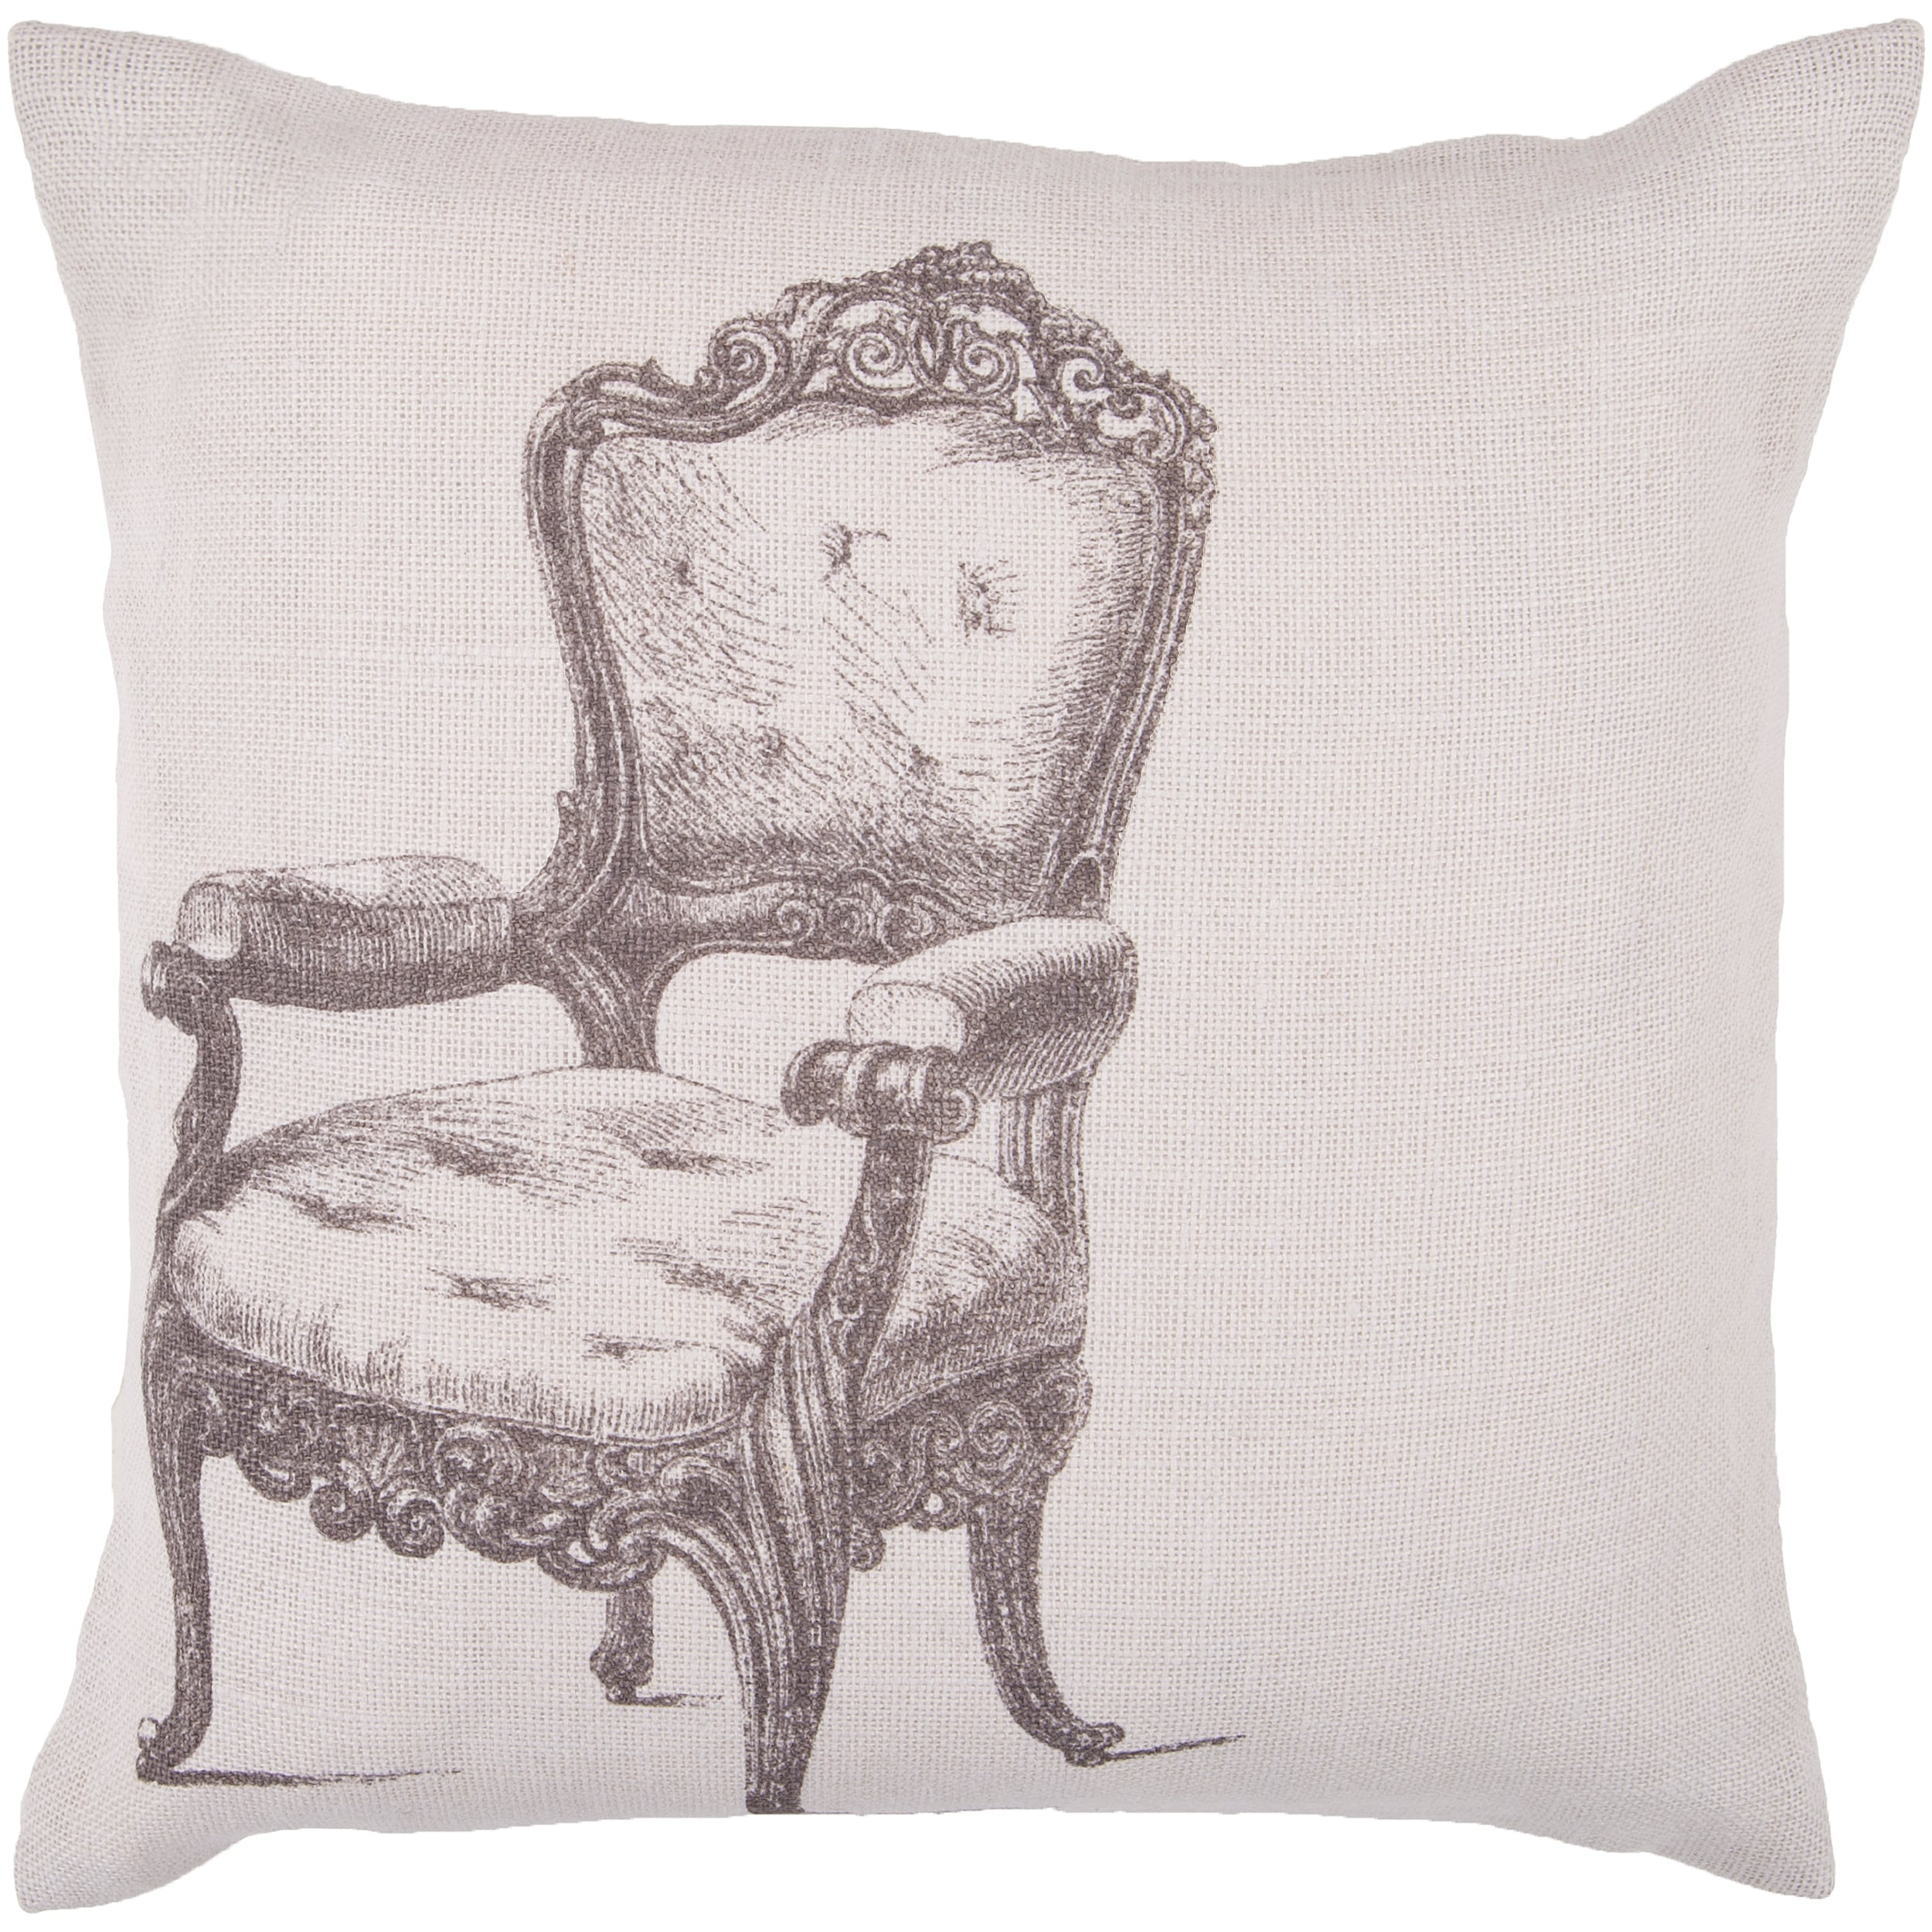 Zang 22-inch Down Decorative Pillow